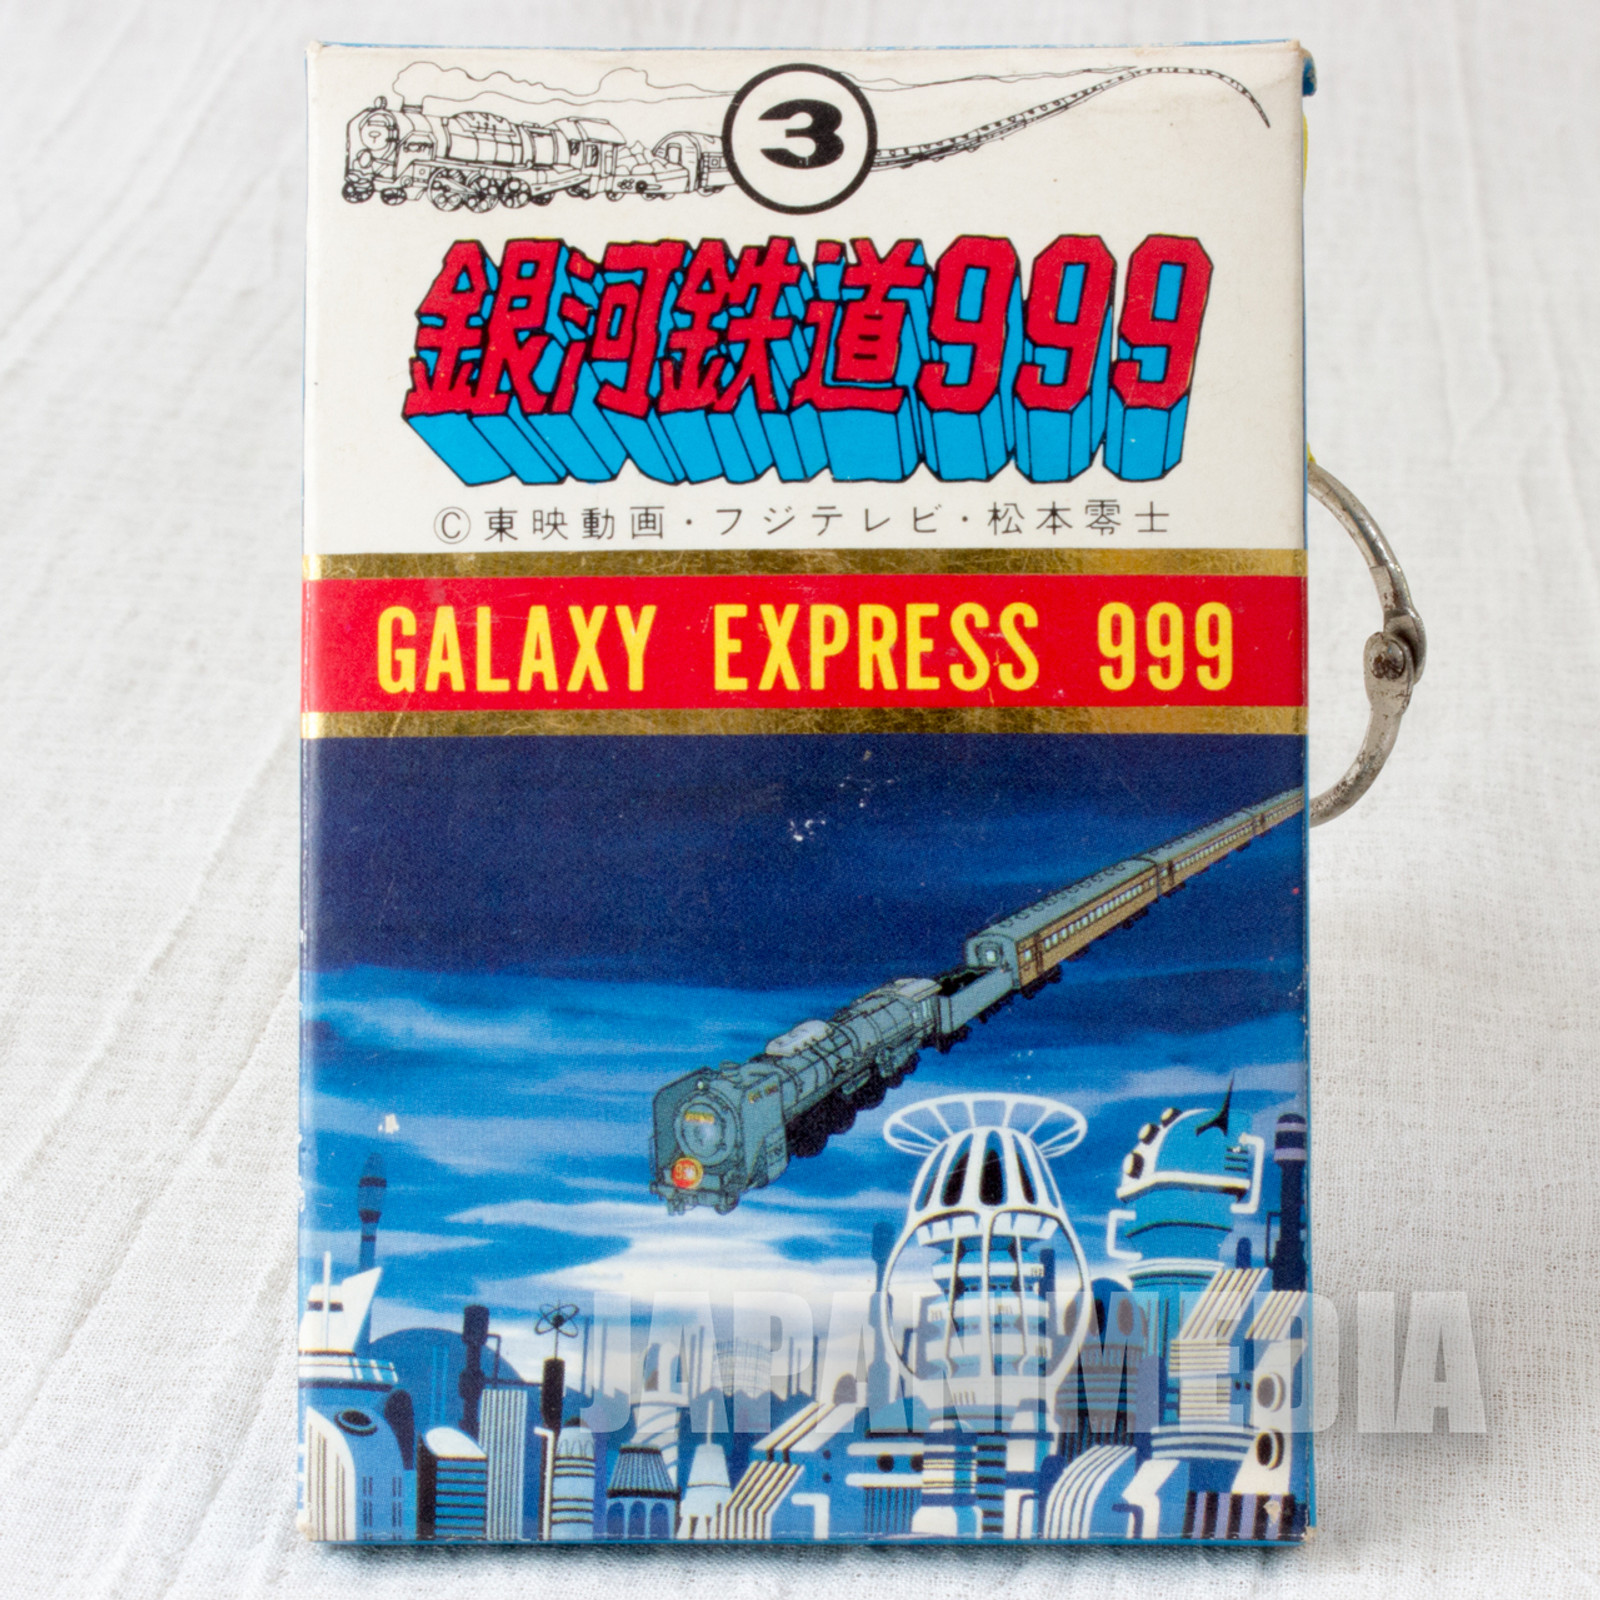 Retro RARE!! Galaxy Express 999 Plastic Card Set #3 JAPAN ANIME